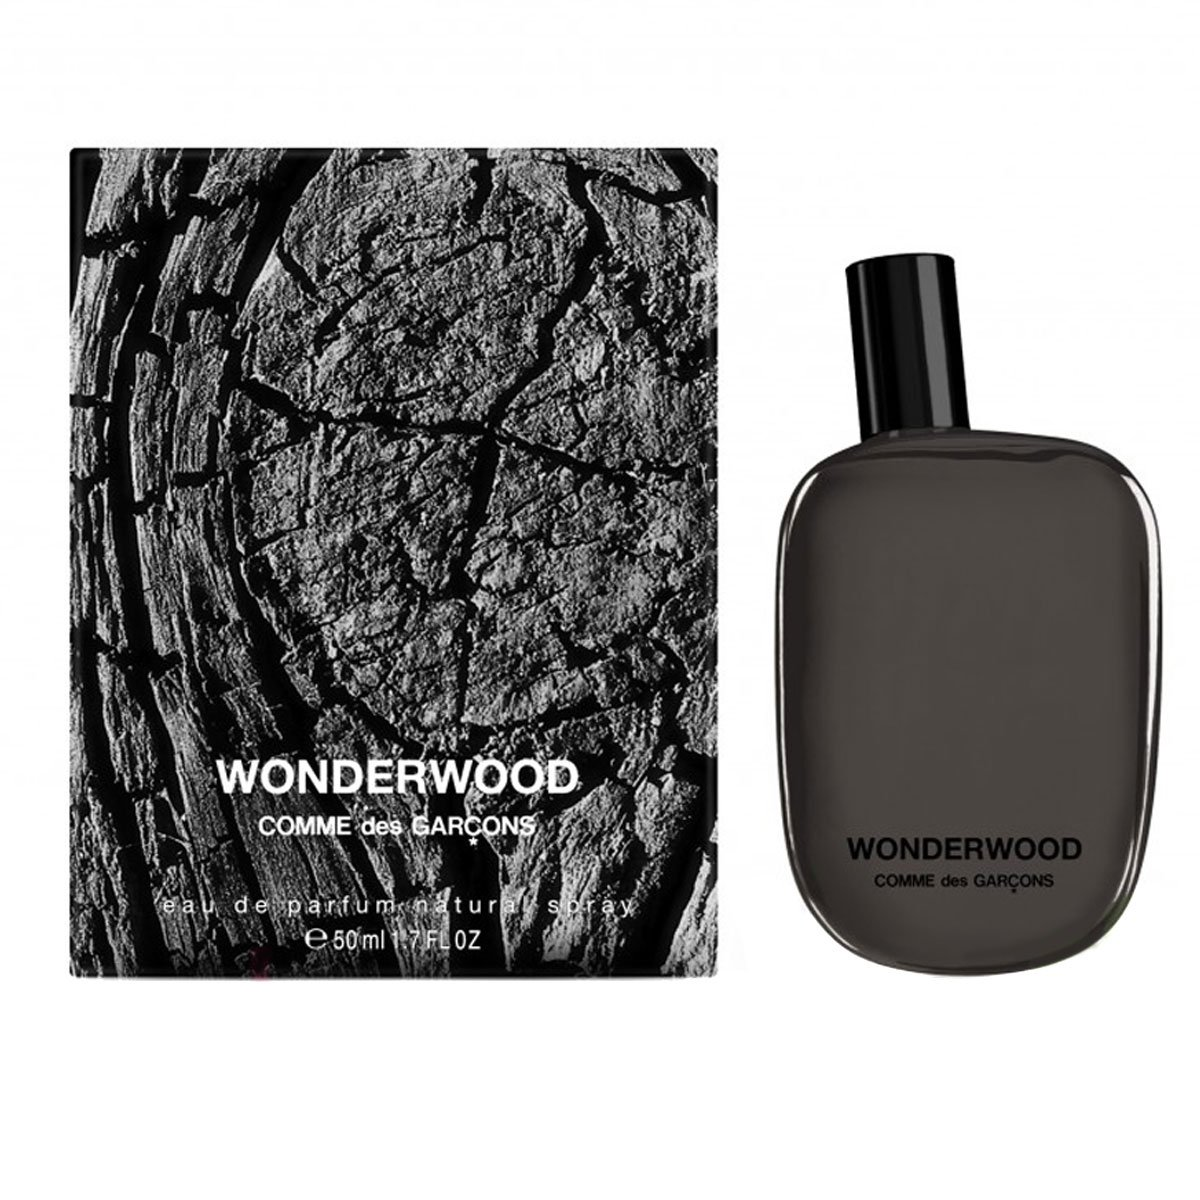 Comme Des Garcons Wonderwood Eau De Parfum Spray For Men, 1.7 Ounces 99 Perfumes (EPI Enterprises LLC) - DROPSHIP 8411061707814